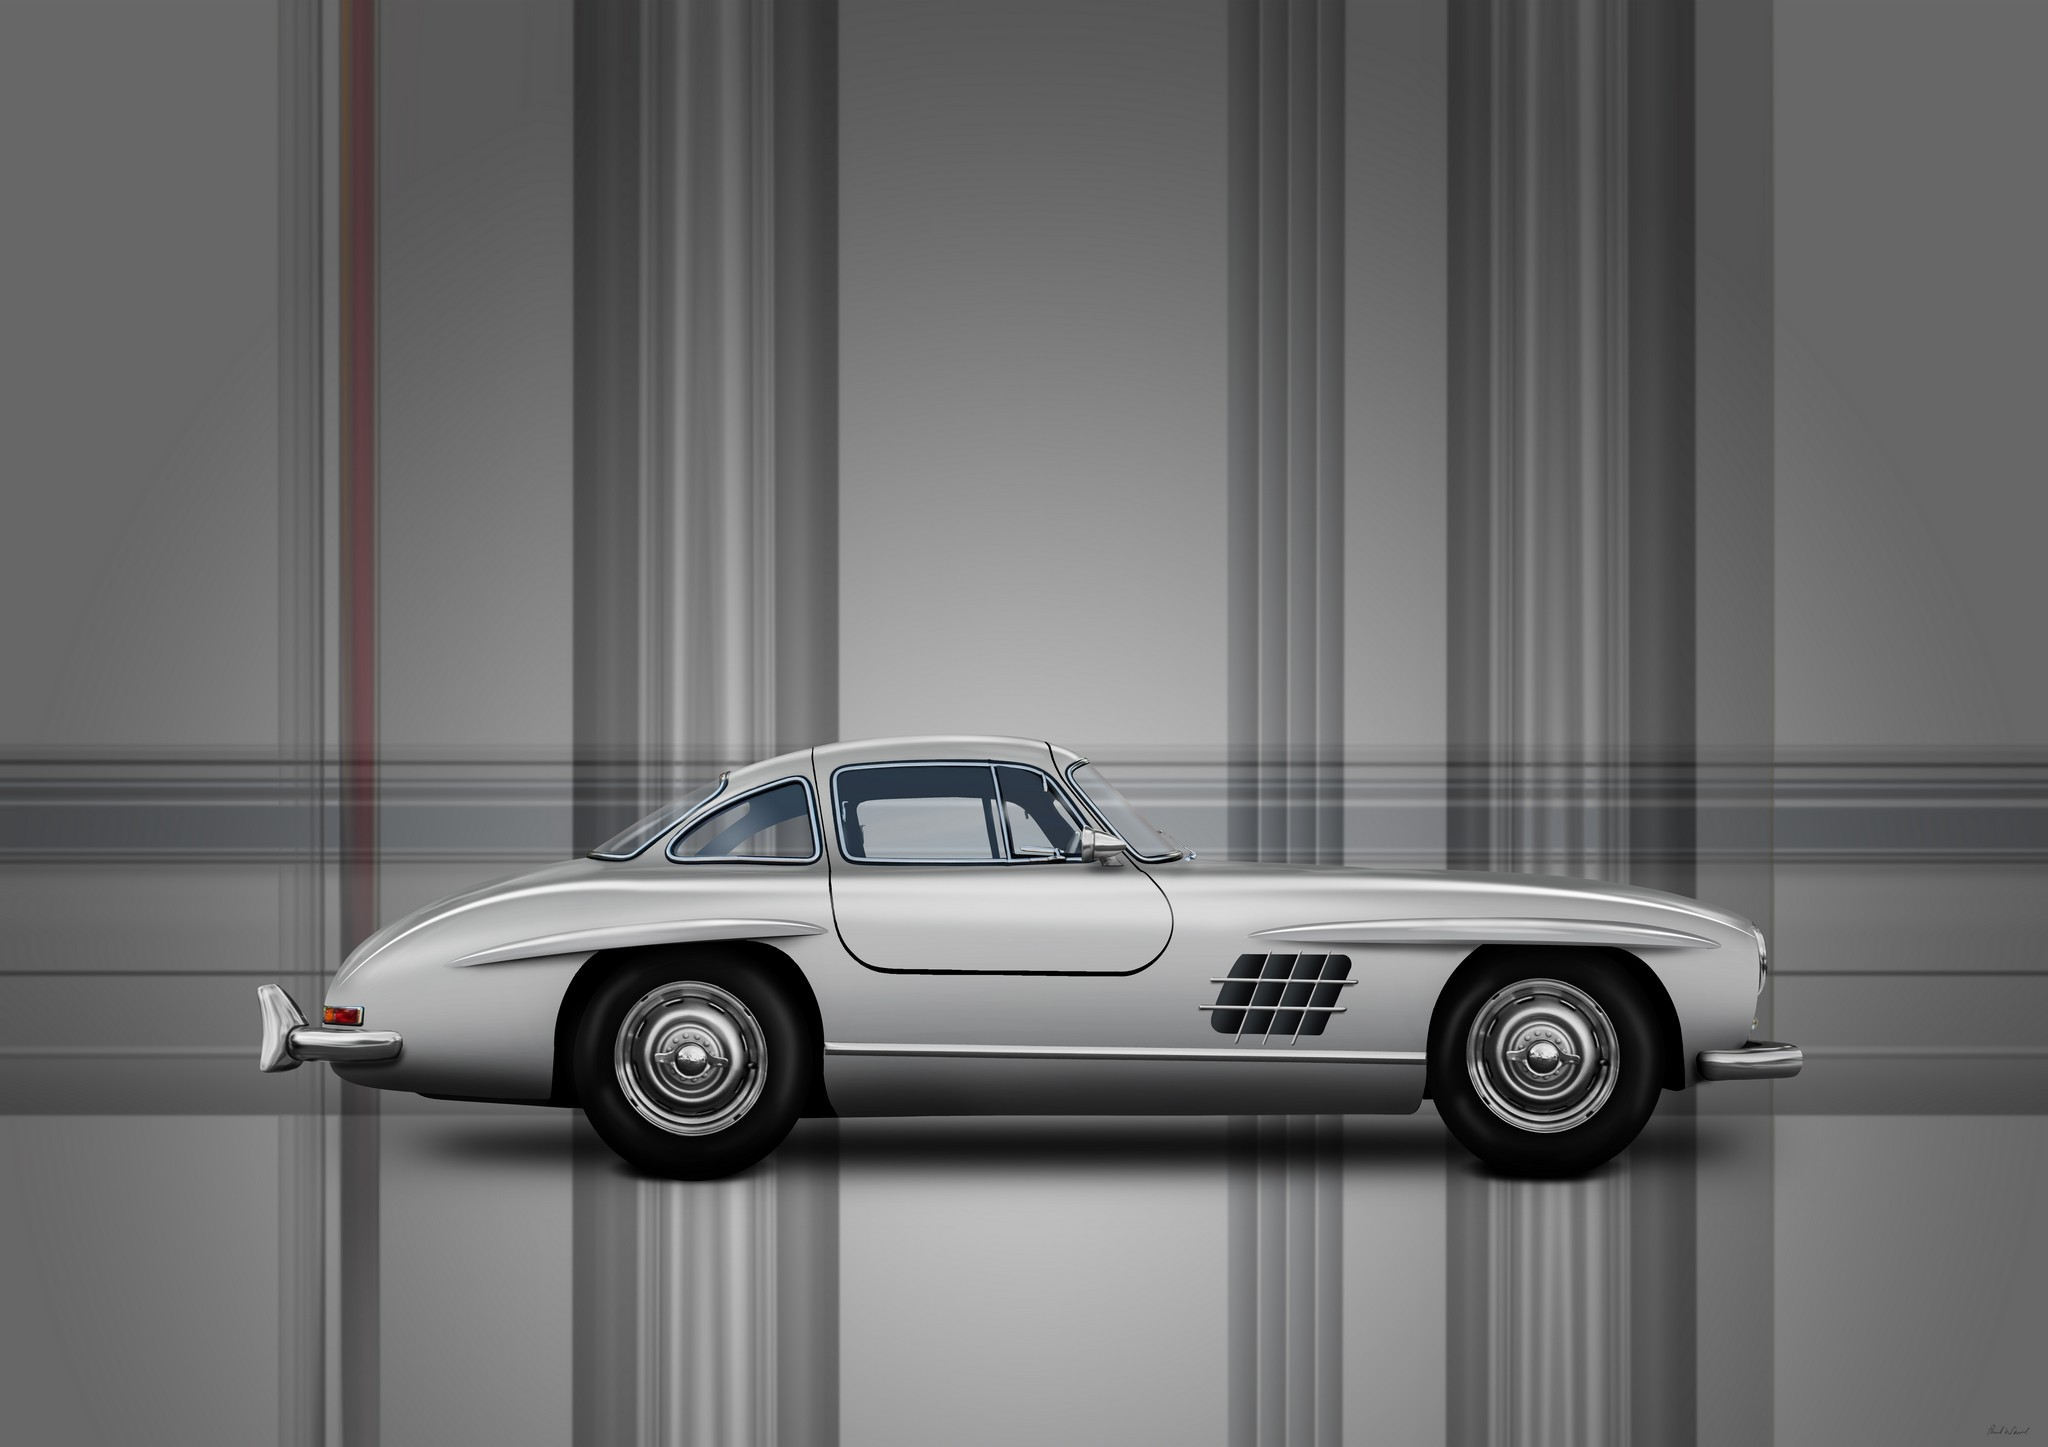 Mercedes benz 300SL Gullwing car art by Automotive artist Paul Ward, car photography, automotive art